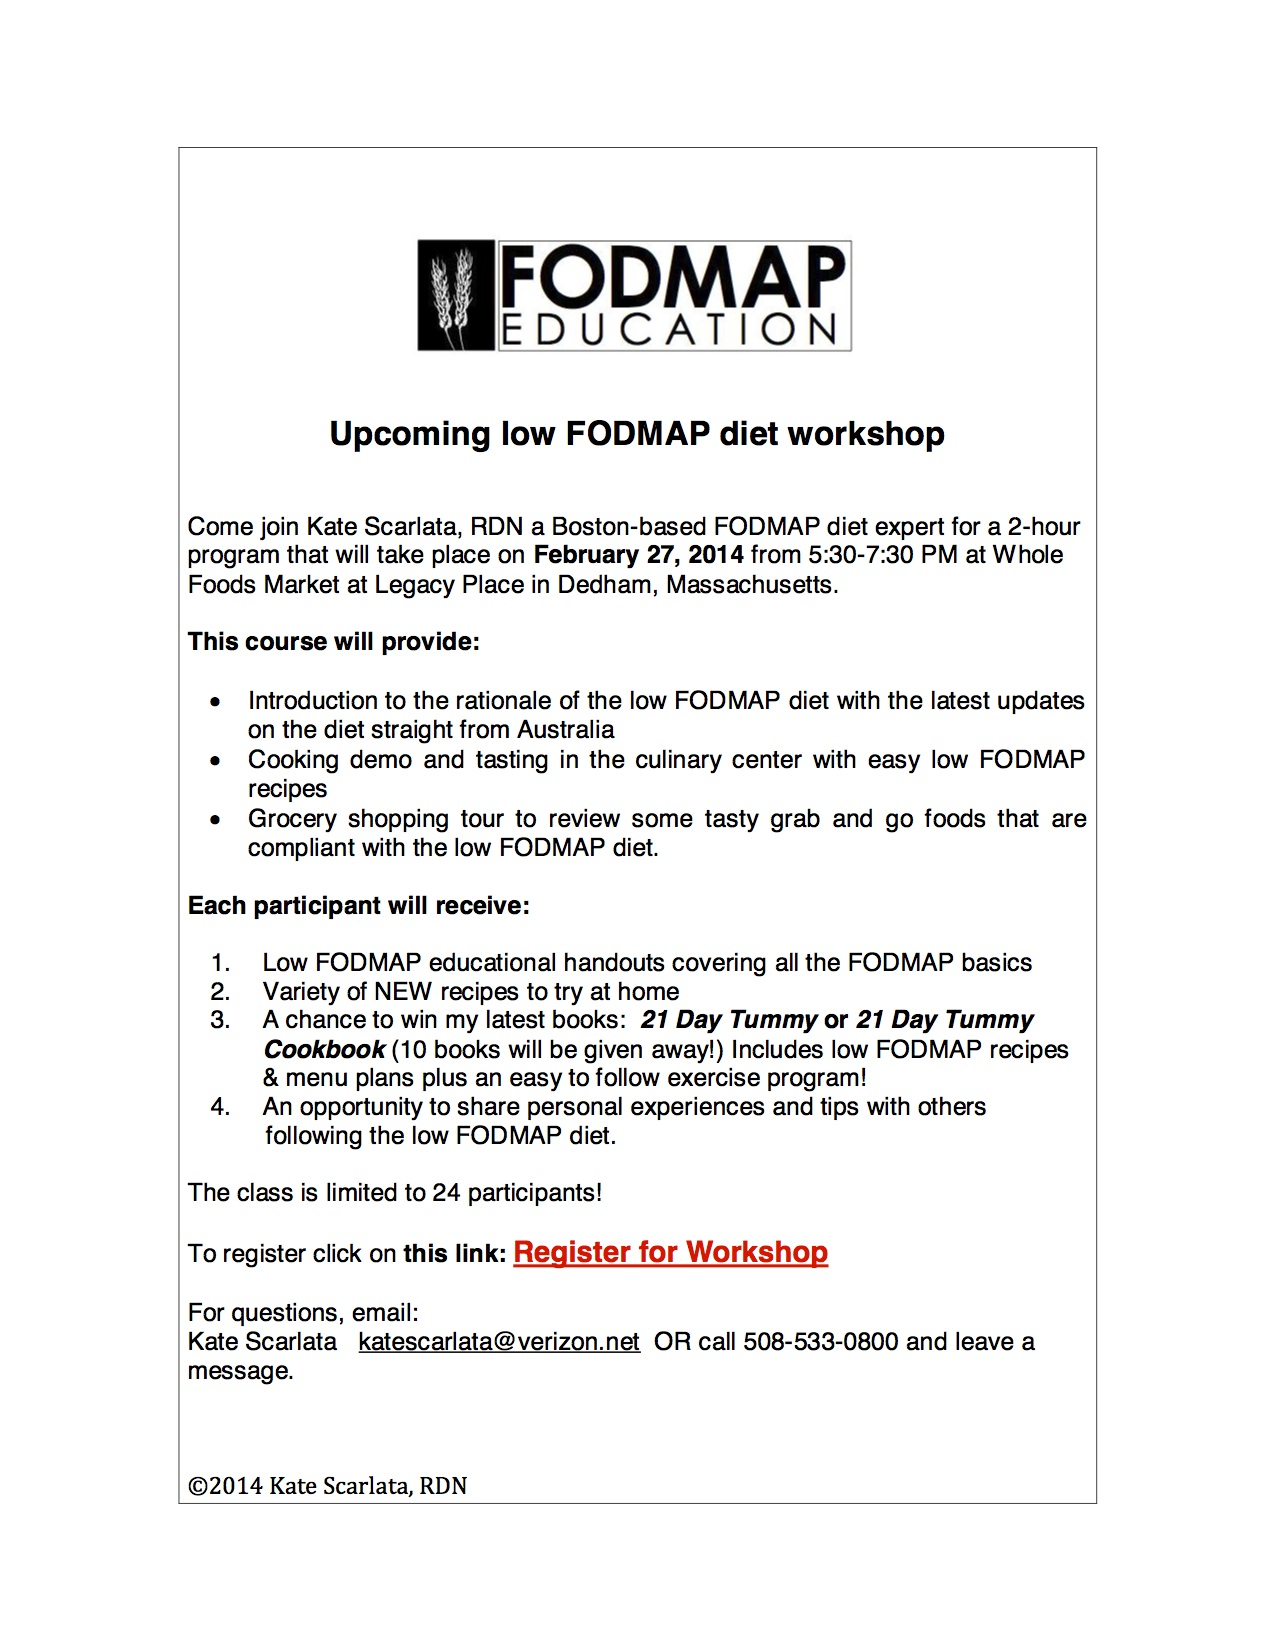 FODMAP Workshop Legacy